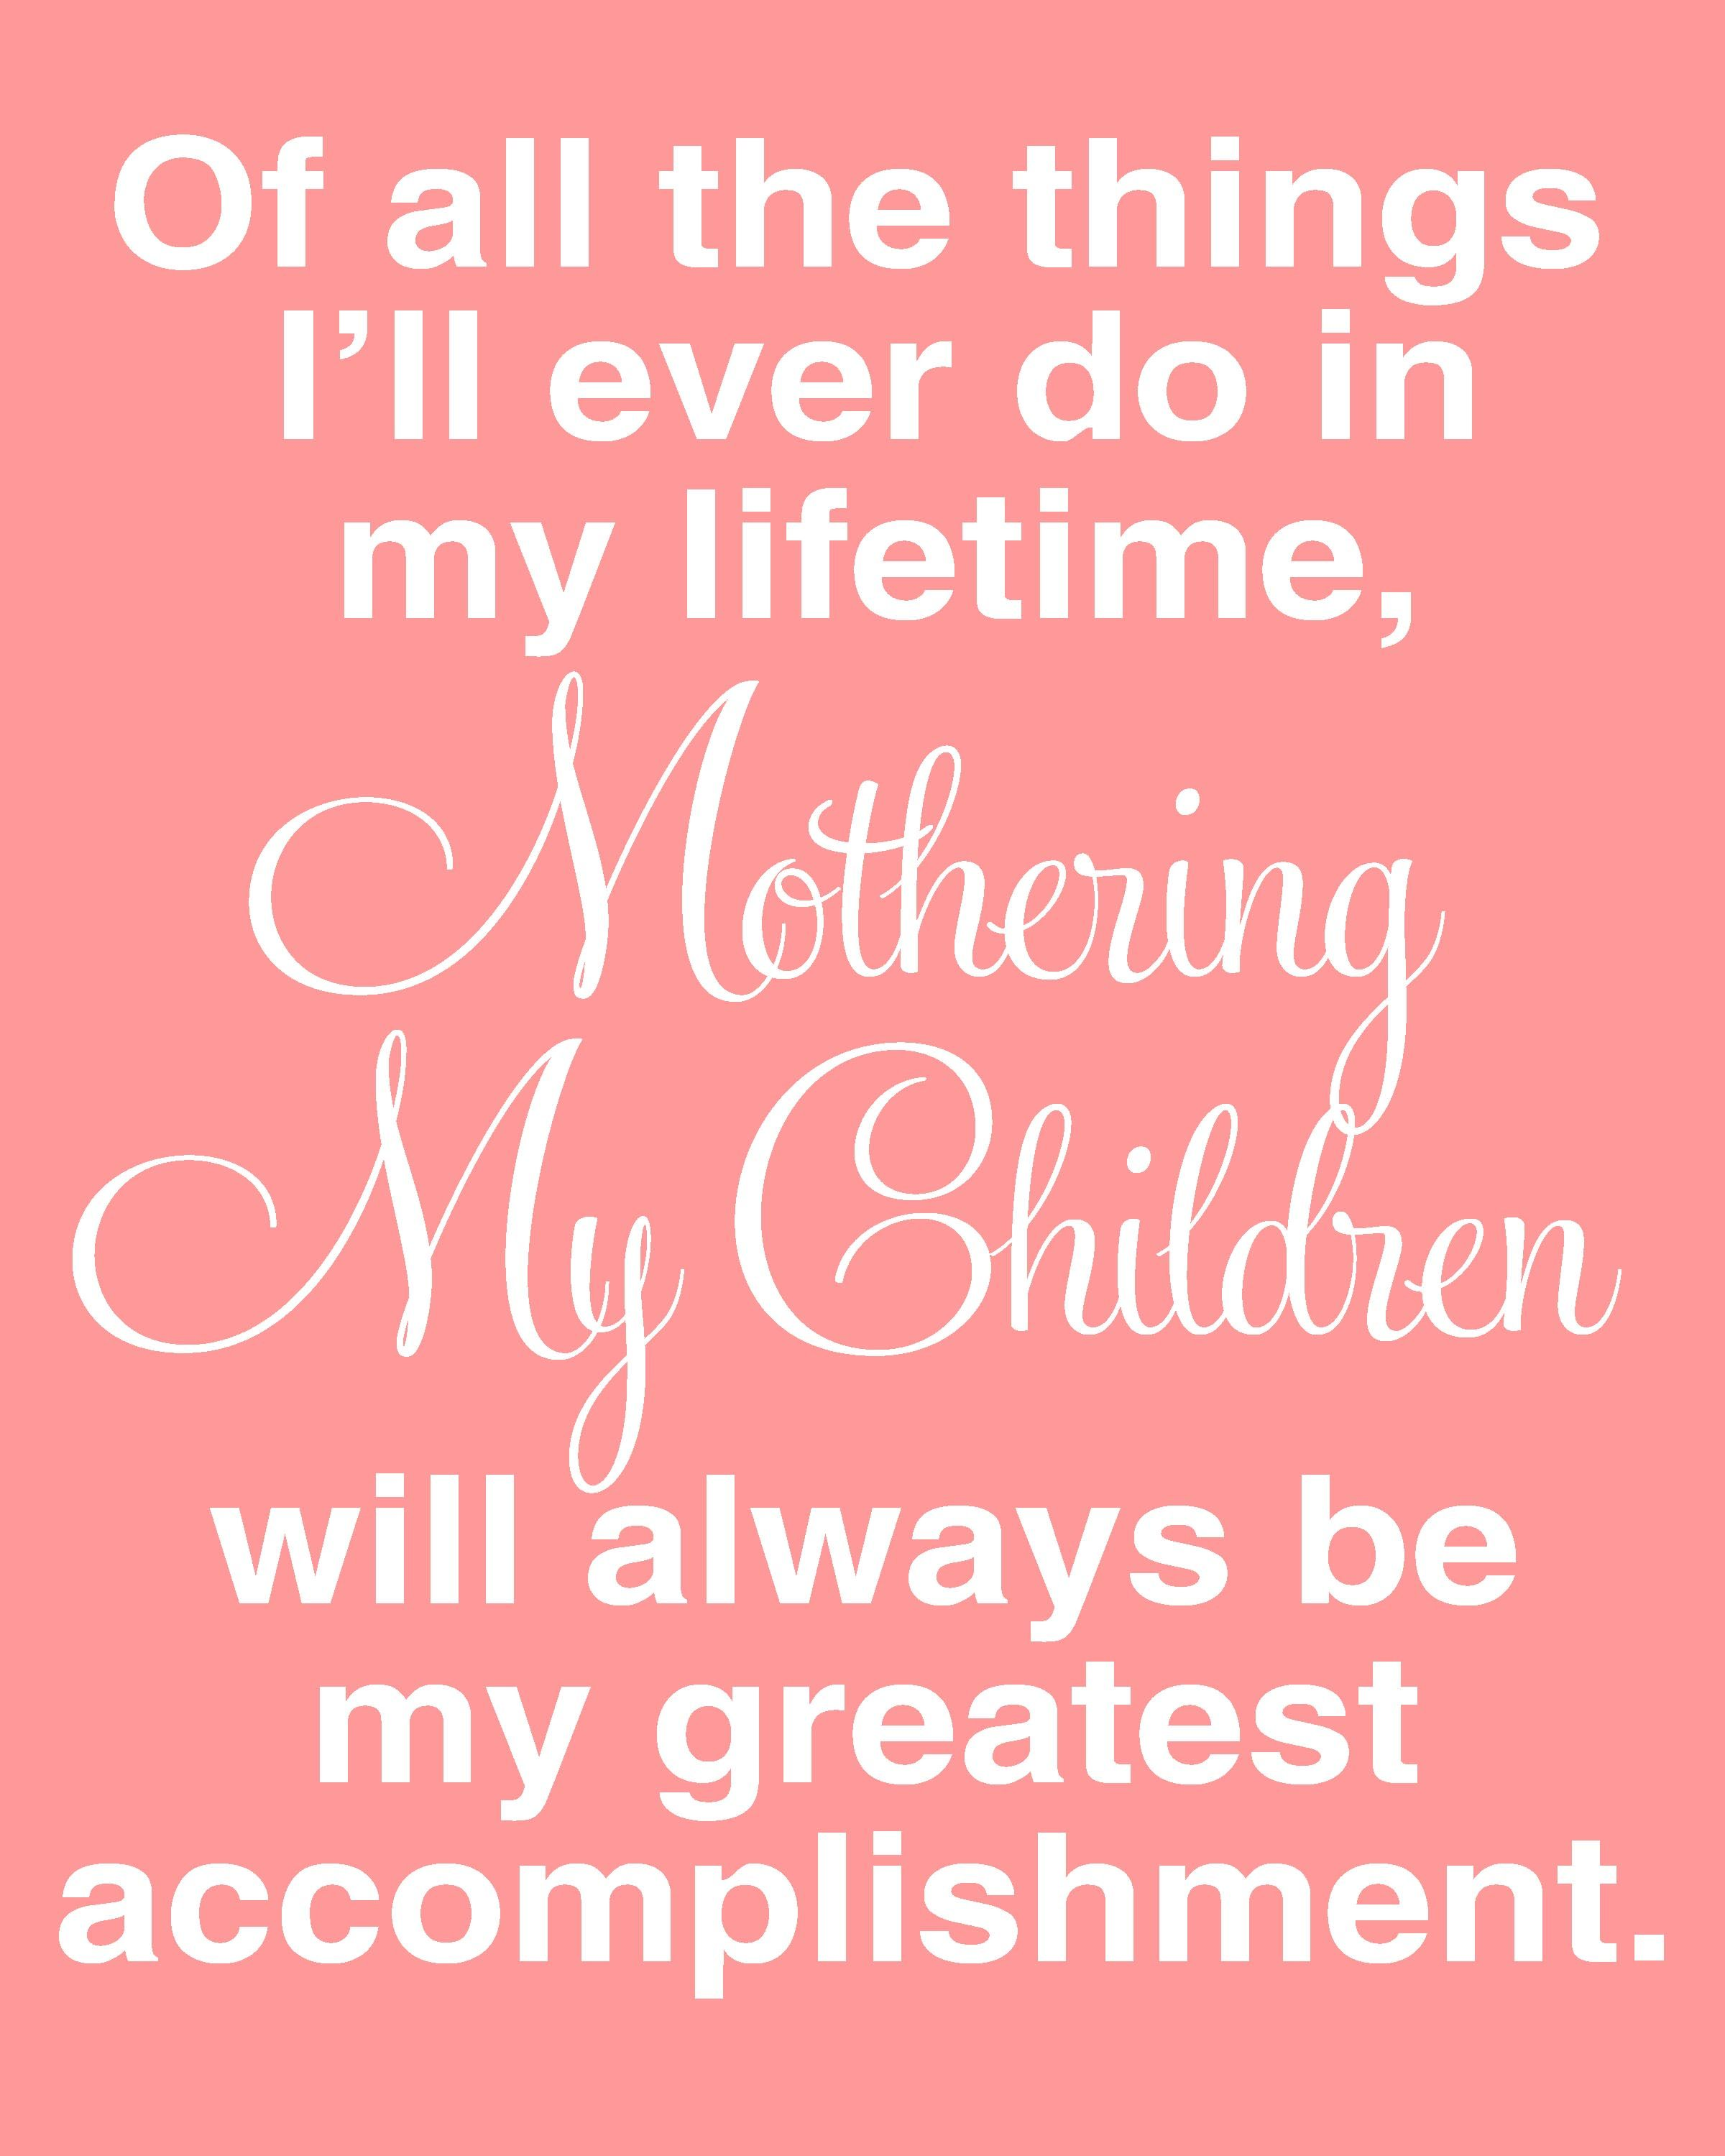 I Love My Children Quotes Motherhood  Inspiration  Pinterest  Parents And Girls